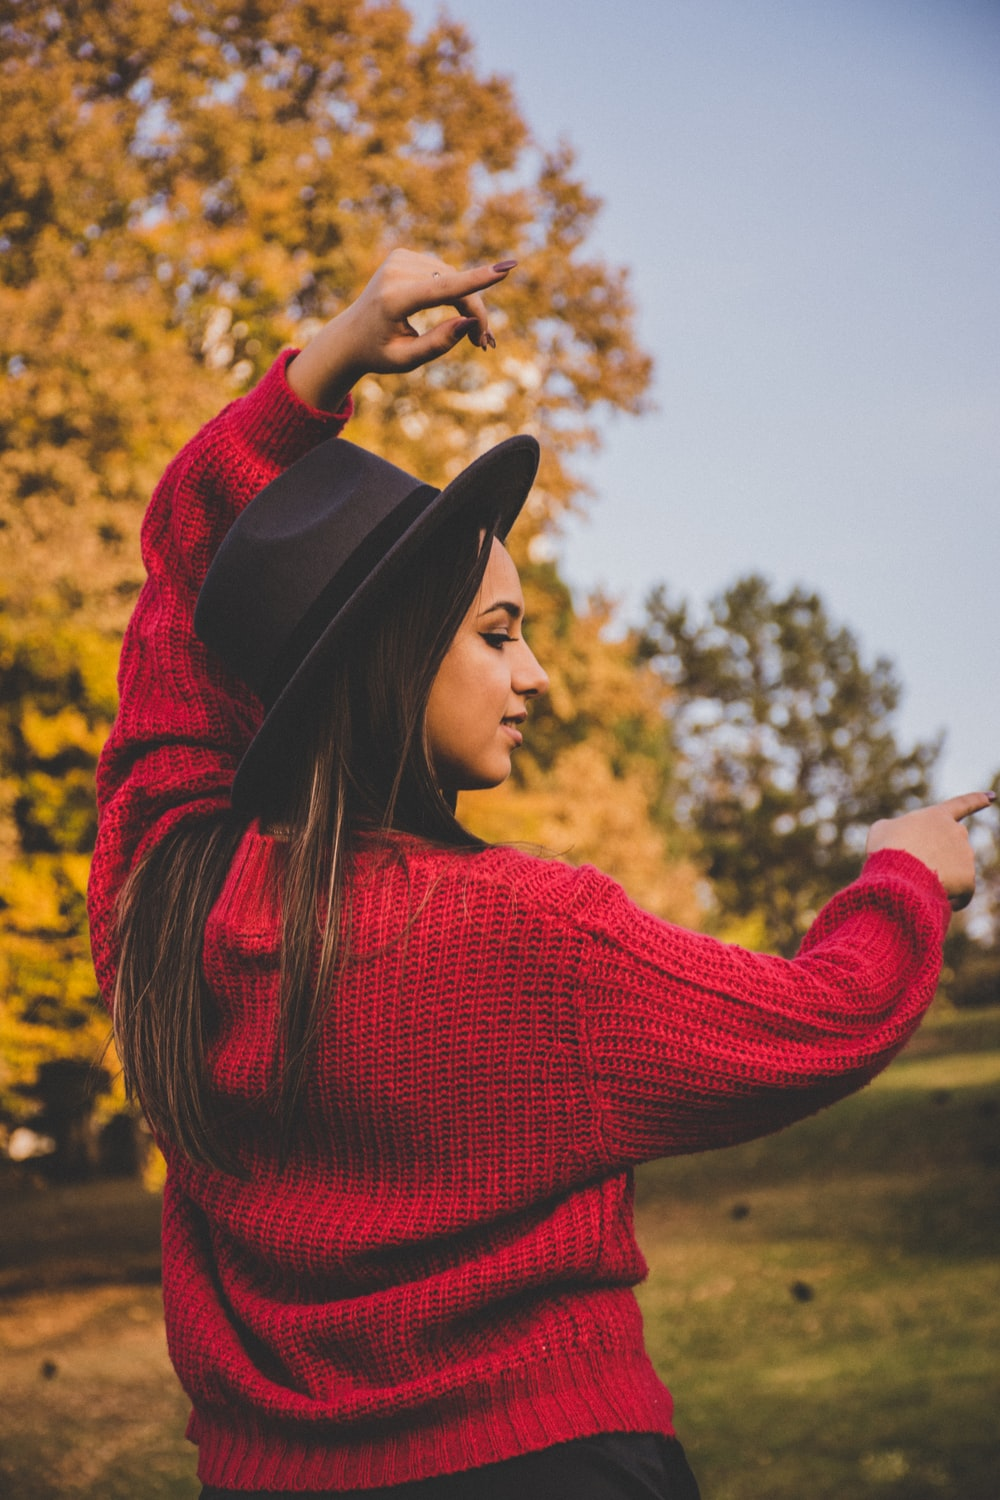 woman raising her hands while wearing red sweater and black fedora hat